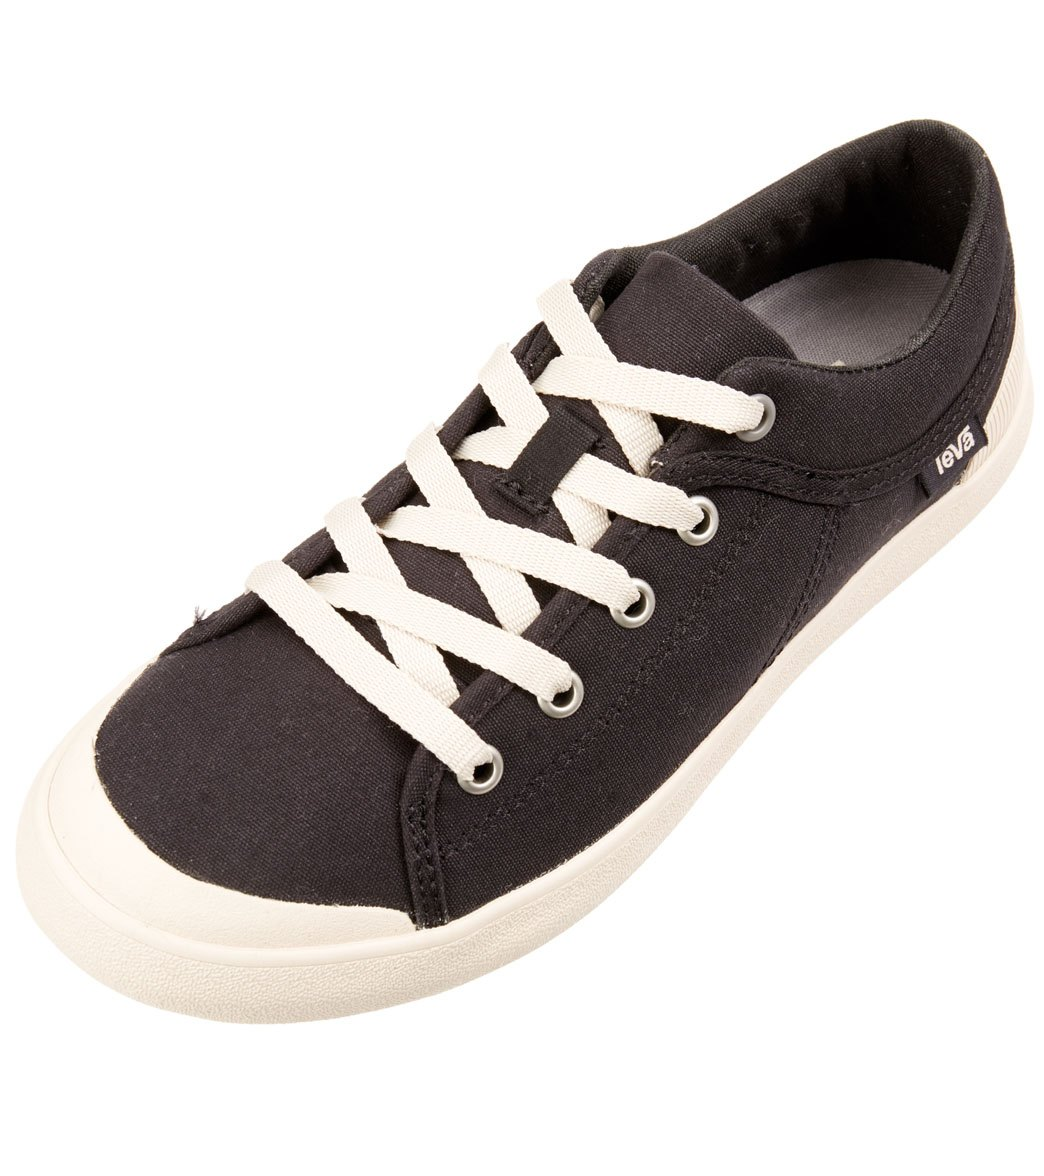 f9b1391c41ea6 Teva Women s Freewheel Washed Canvas Shoe at SwimOutlet.com - Free Shipping